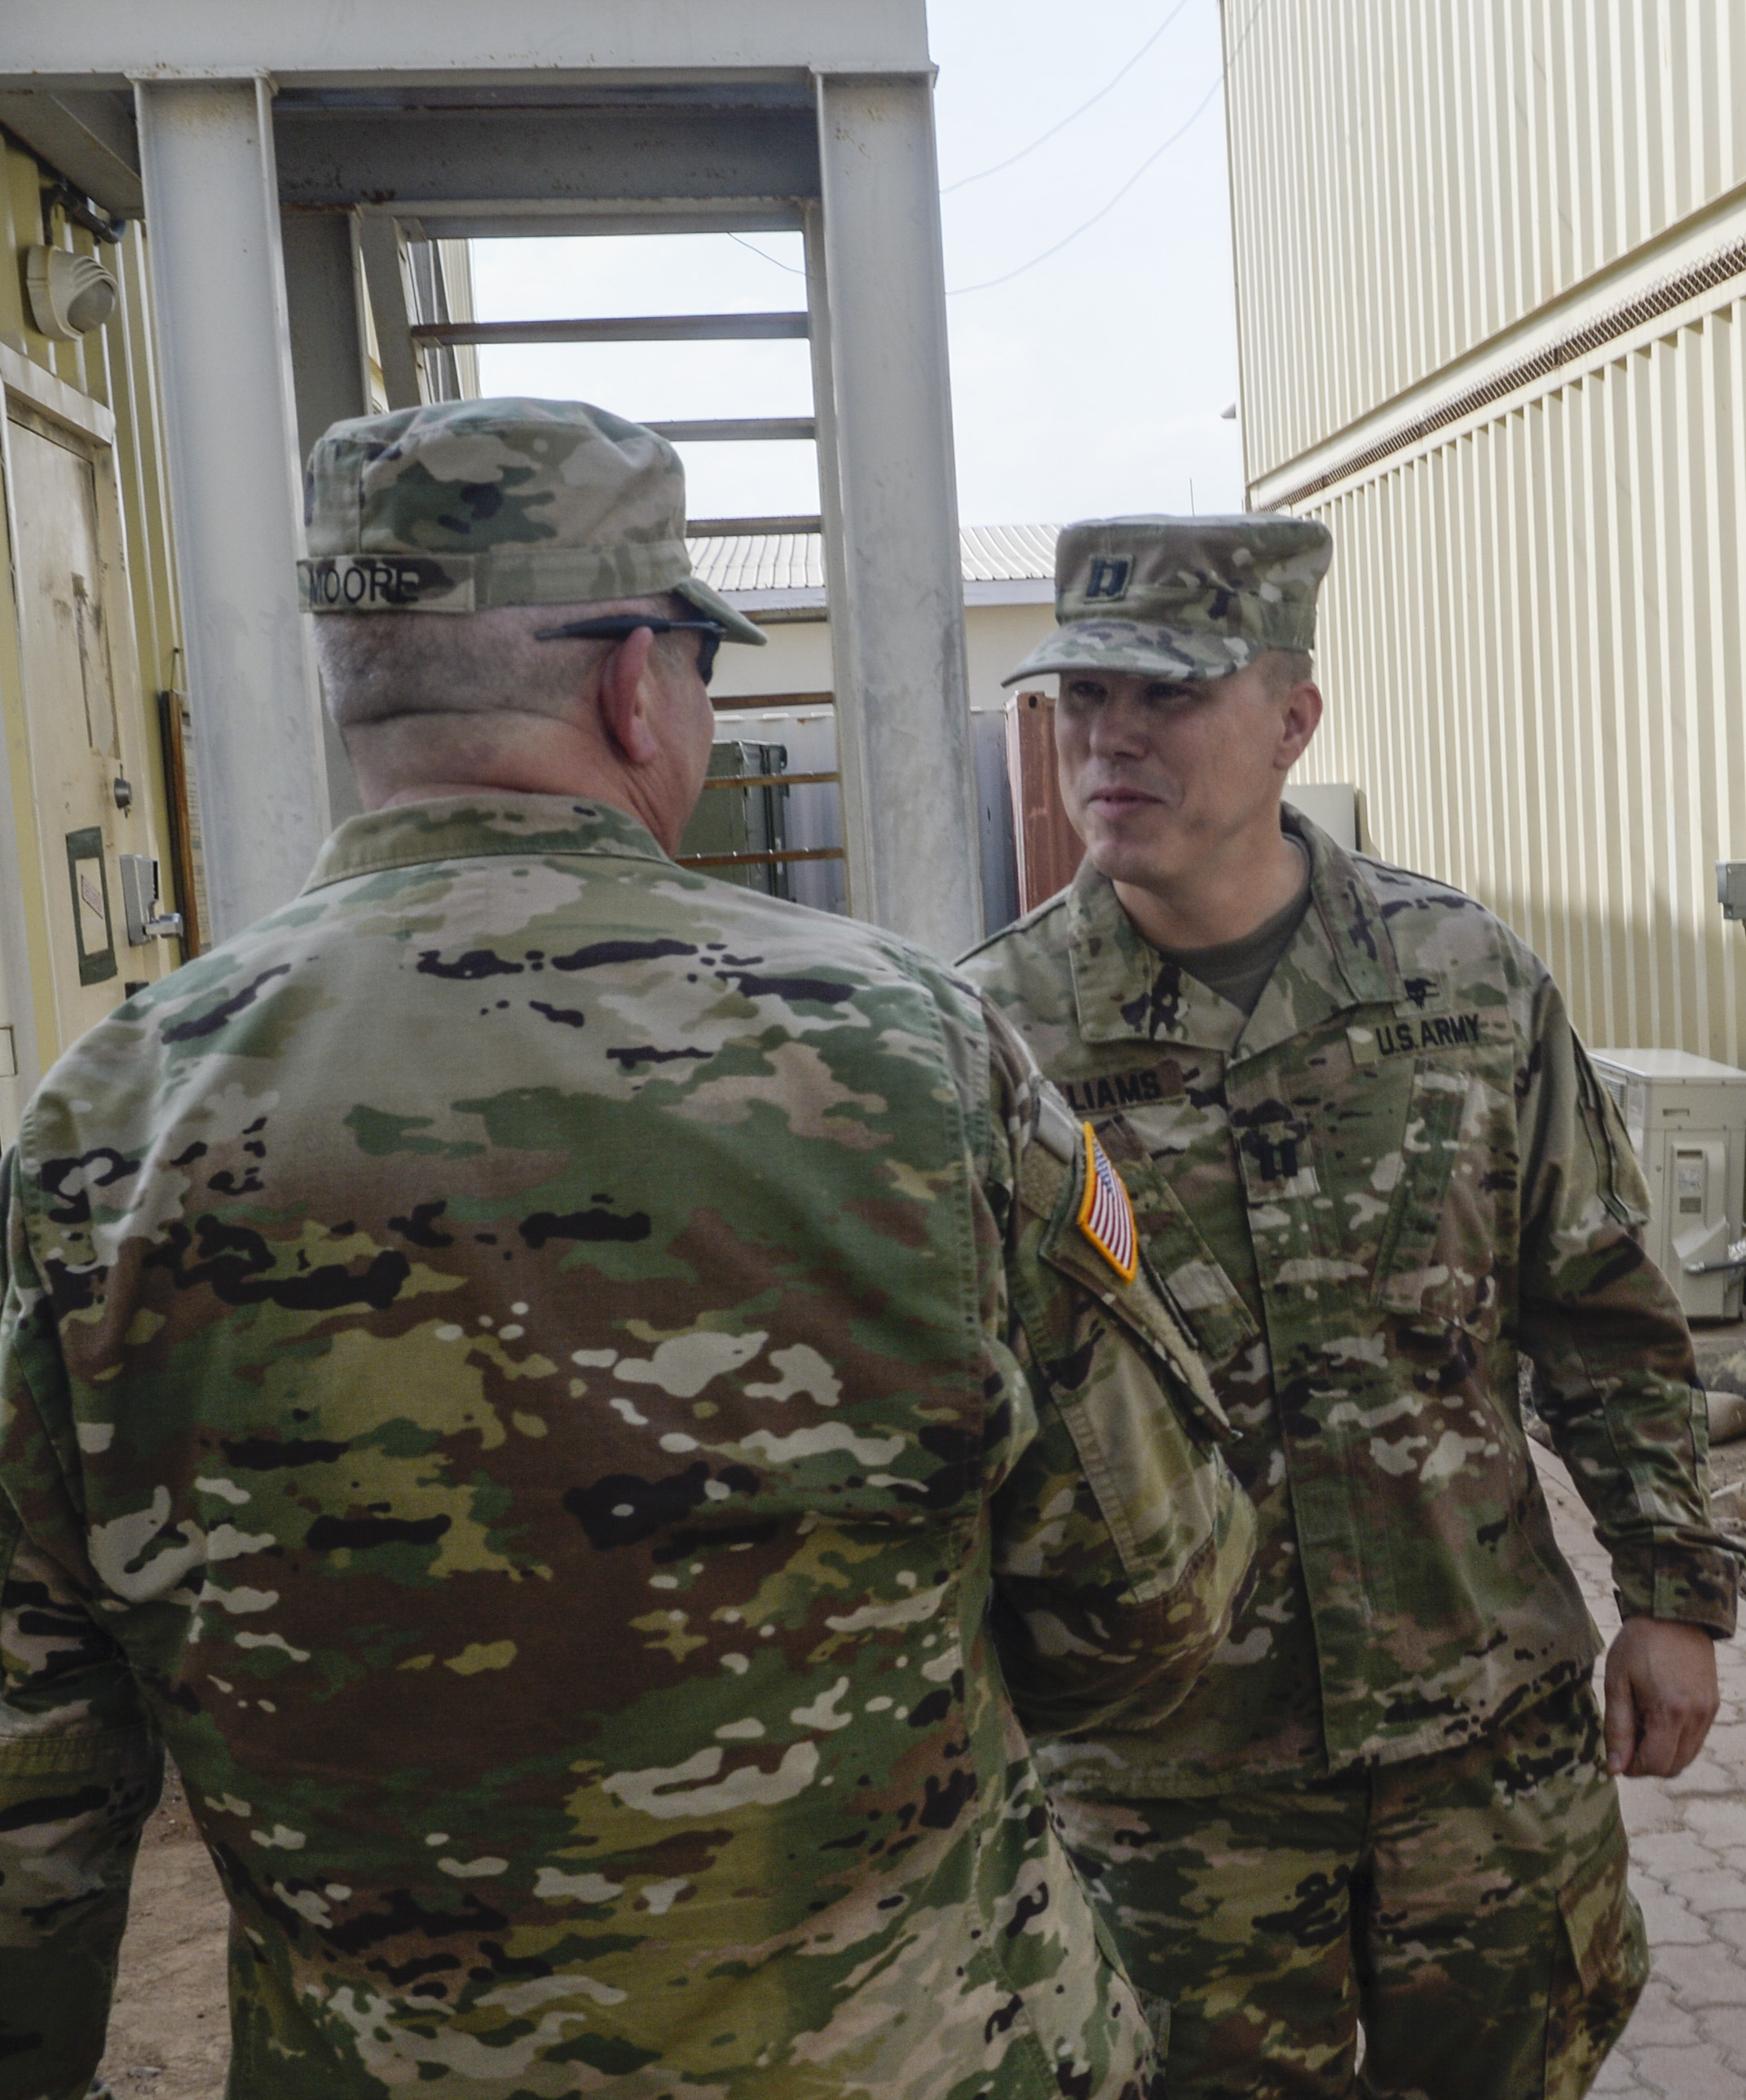 Brig. Gen. Kenneth H. Moore, U.S. Army Africa deputy commander, meets with Army Reserve members of the 411th Civil Affairs Battalion during his visit to Camp Lemonnier, Djibouti, Jan. 16, 2017.  Brig. Gen. Moore met with Army Reservists to discuss the specific challenges and objectives associated with their deployment to the Horn of Africa.